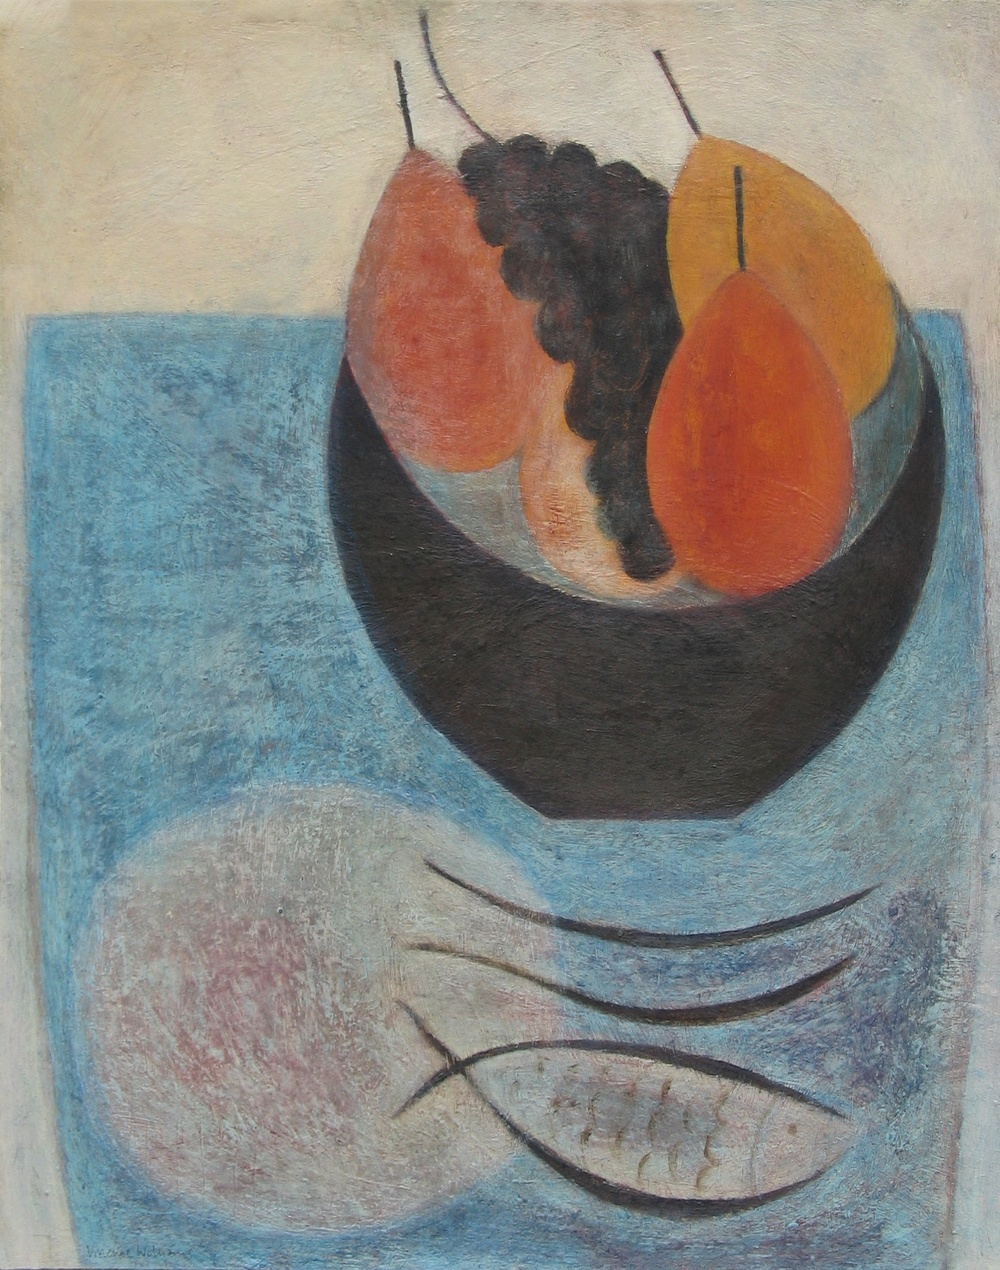 Fruit Bowl and Fish, 51cm x 41cm, 2014